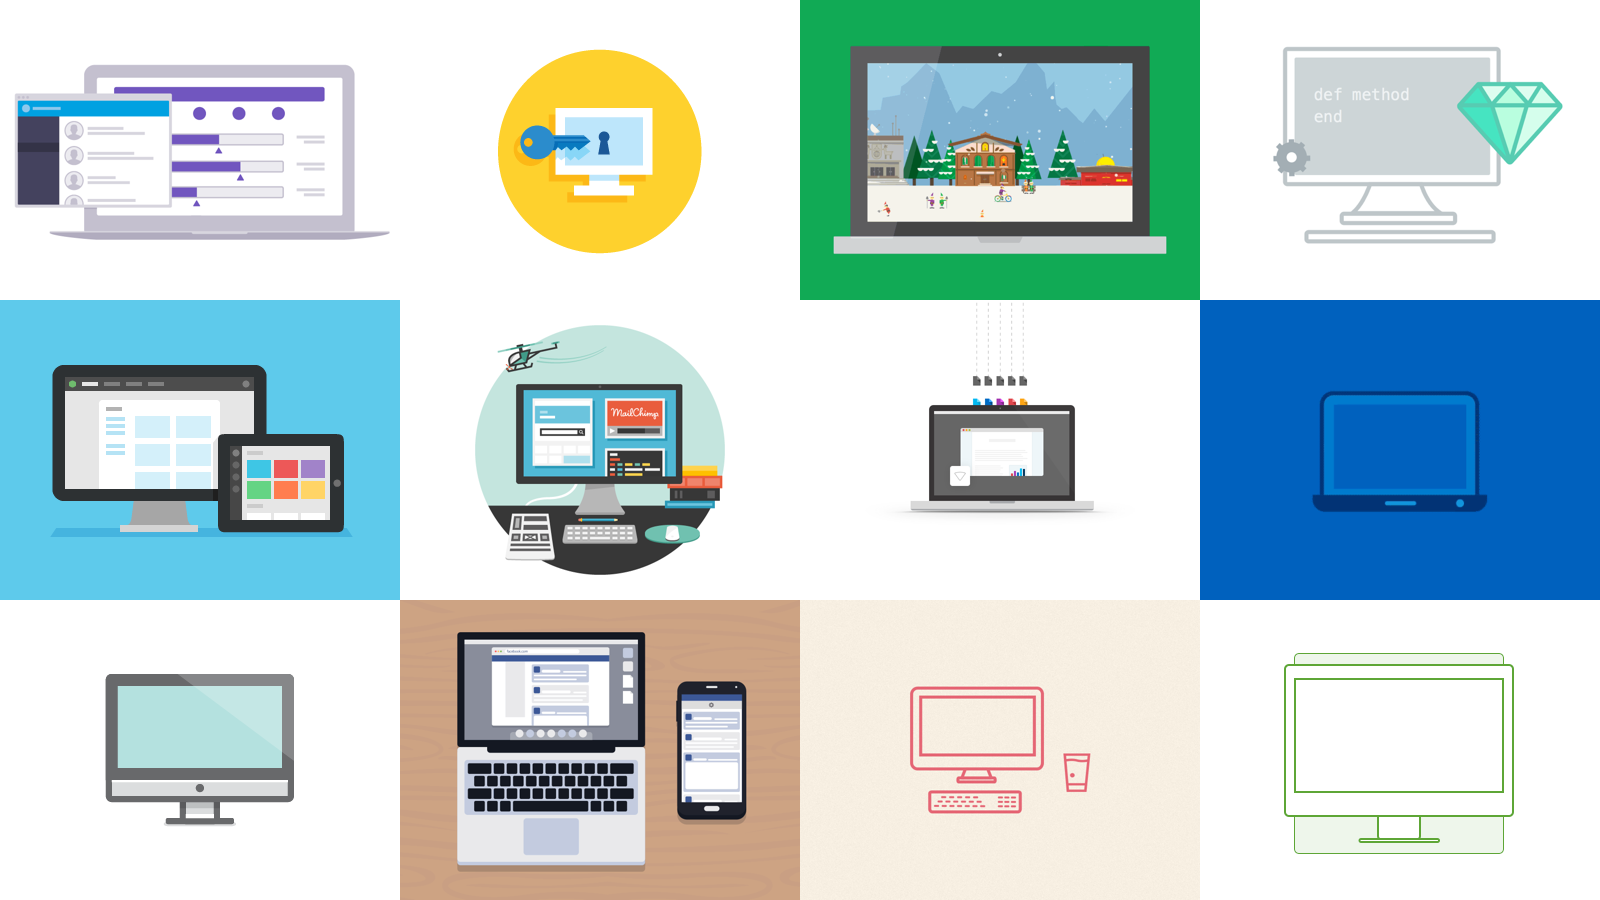 One can find modern minimalist creativity displayed throughout the industry. In order: Heroku, Palantir, Google, Thoughtbot, Treehouse, MailChimp, Box, Intel, Dropbox, Facebook, Campaign Monitor and InVision.